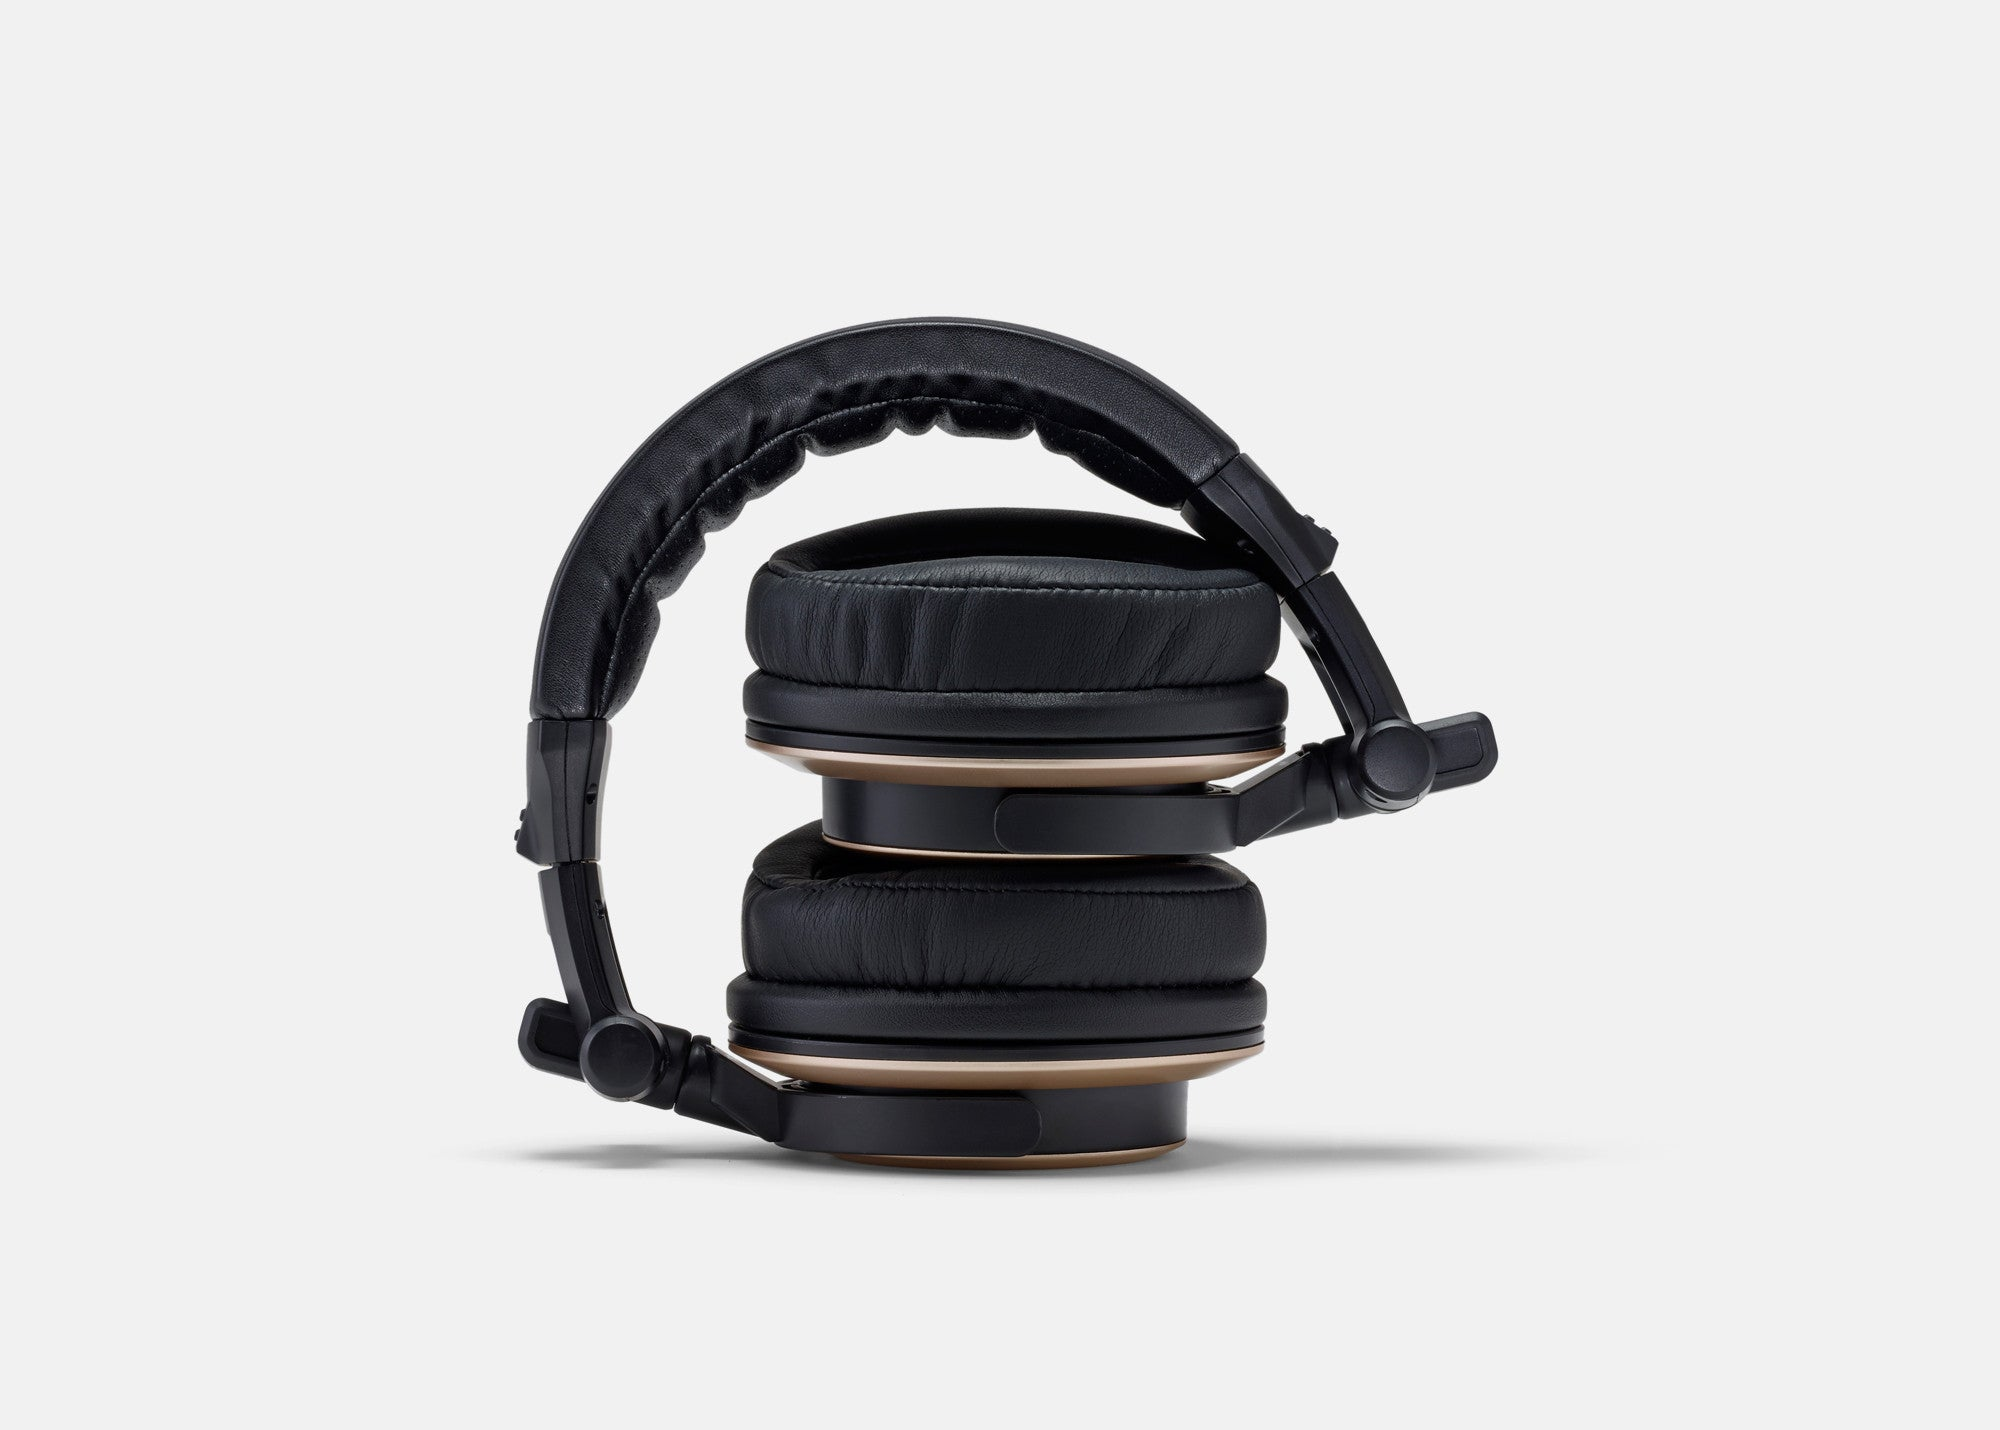 CB-1 Headphones – Folded